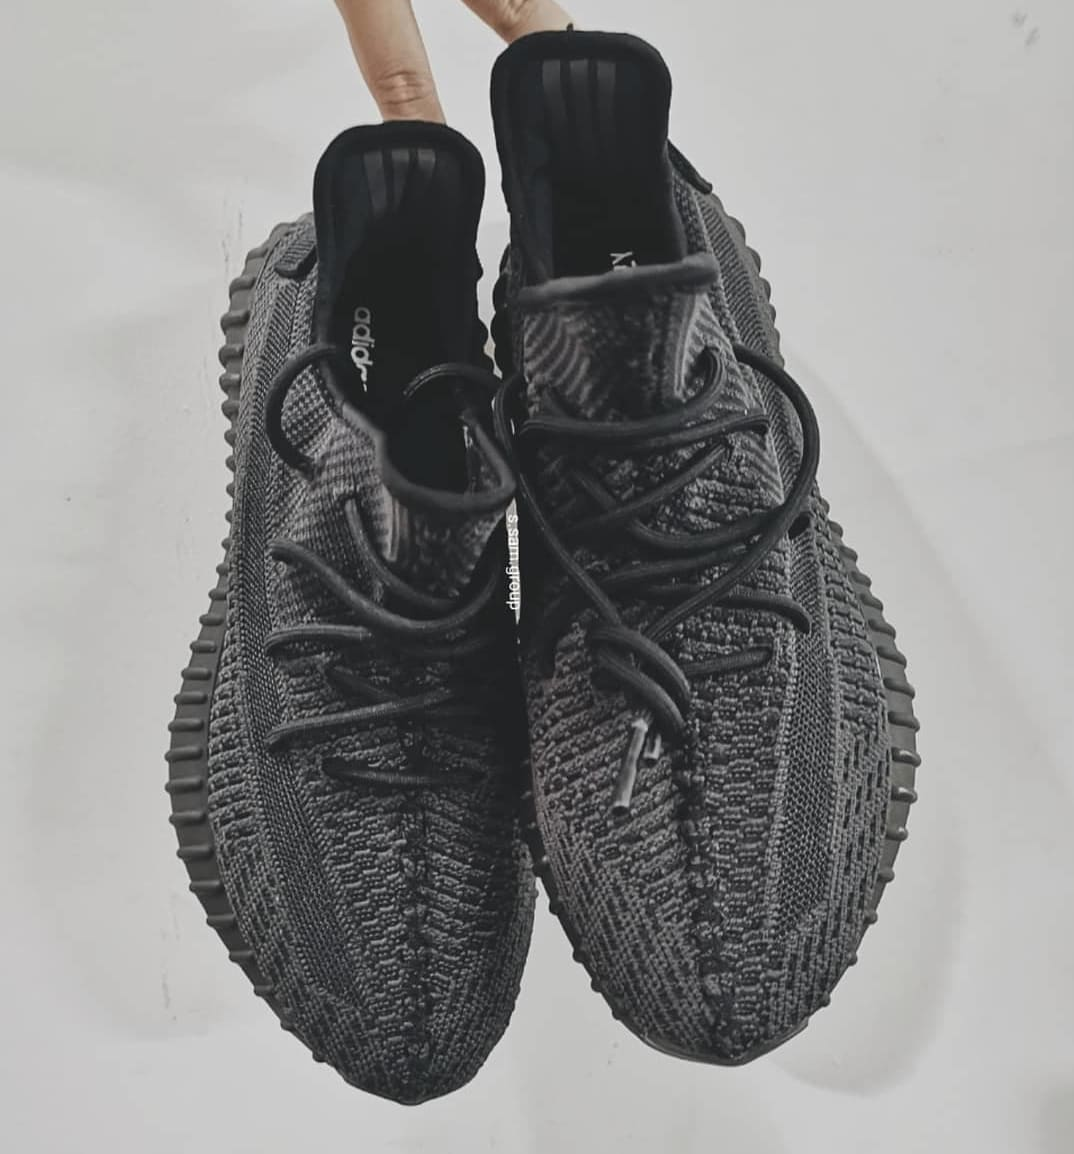 d7ce93c79cc5f Adidas Yeezy Boost 350 V2  Black  Relase Date